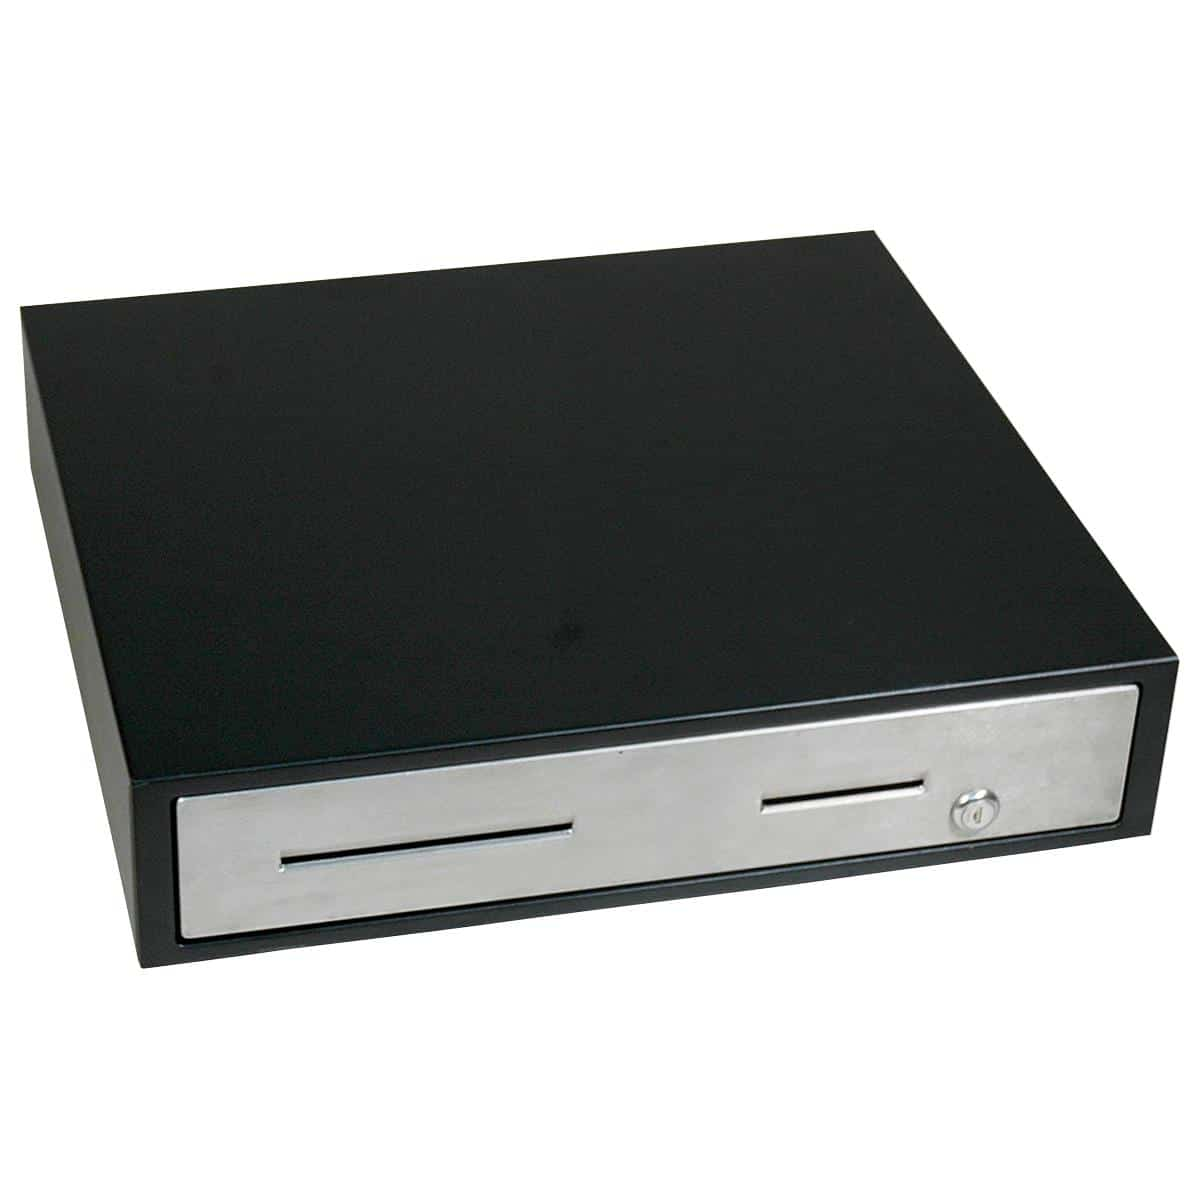 Drawer Model 18 POS Black 24V